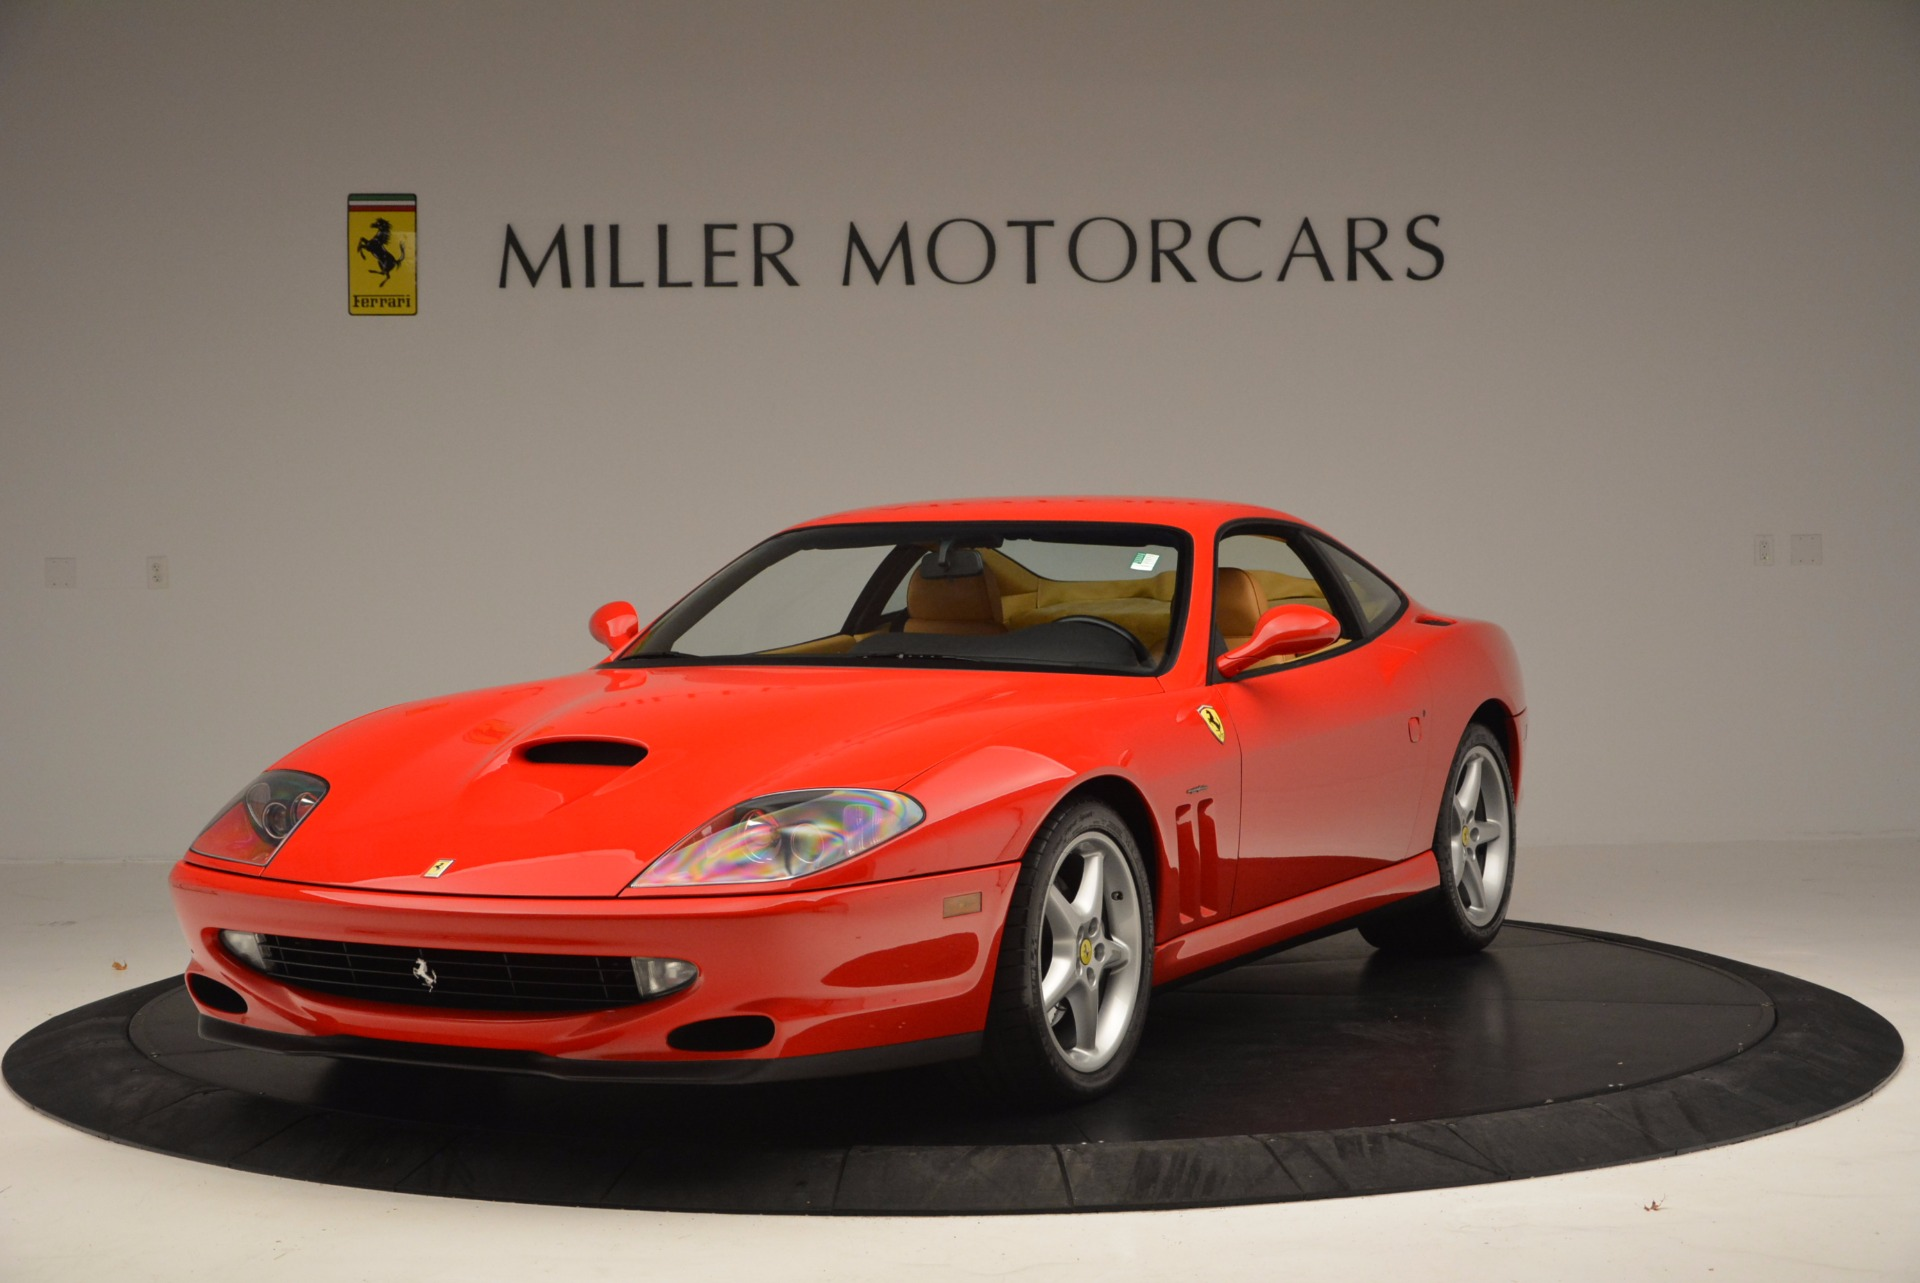 Used 2000 Ferrari 550 Maranello for sale Sold at Pagani of Greenwich in Greenwich CT 06830 1